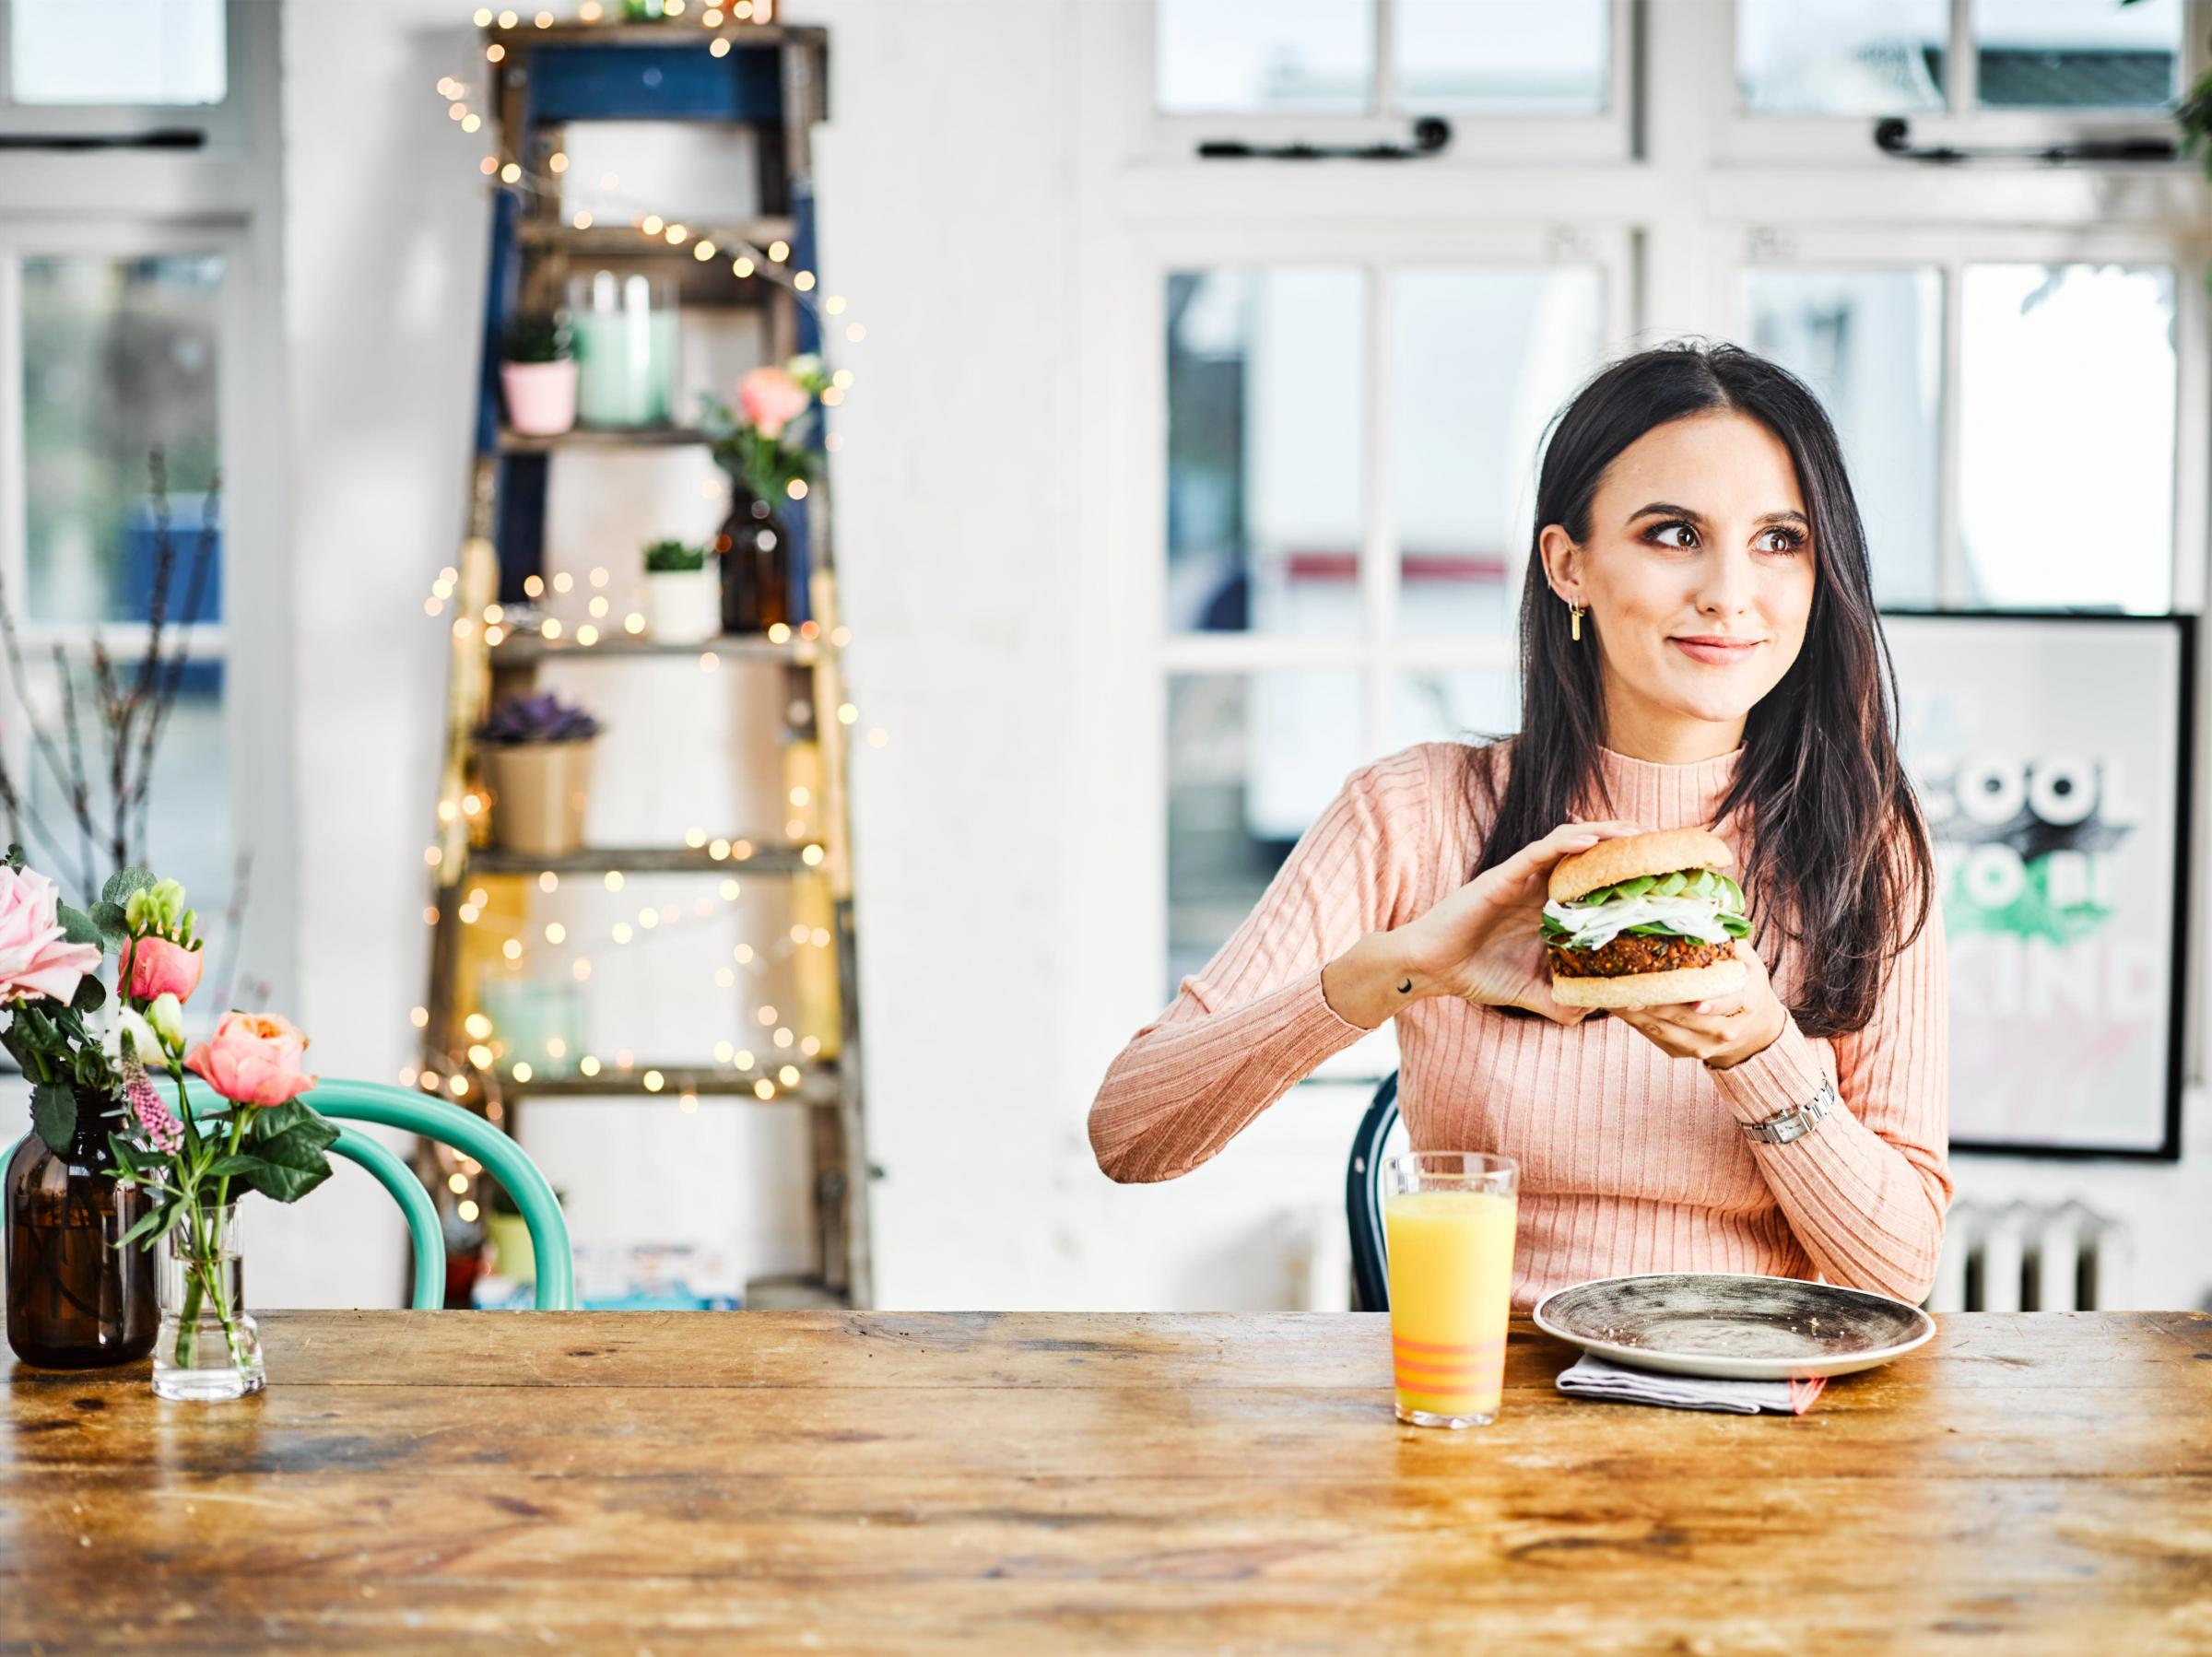 Made in Chelsea star Lucy Watson shares three recipes from her new book Feed Me Vegan